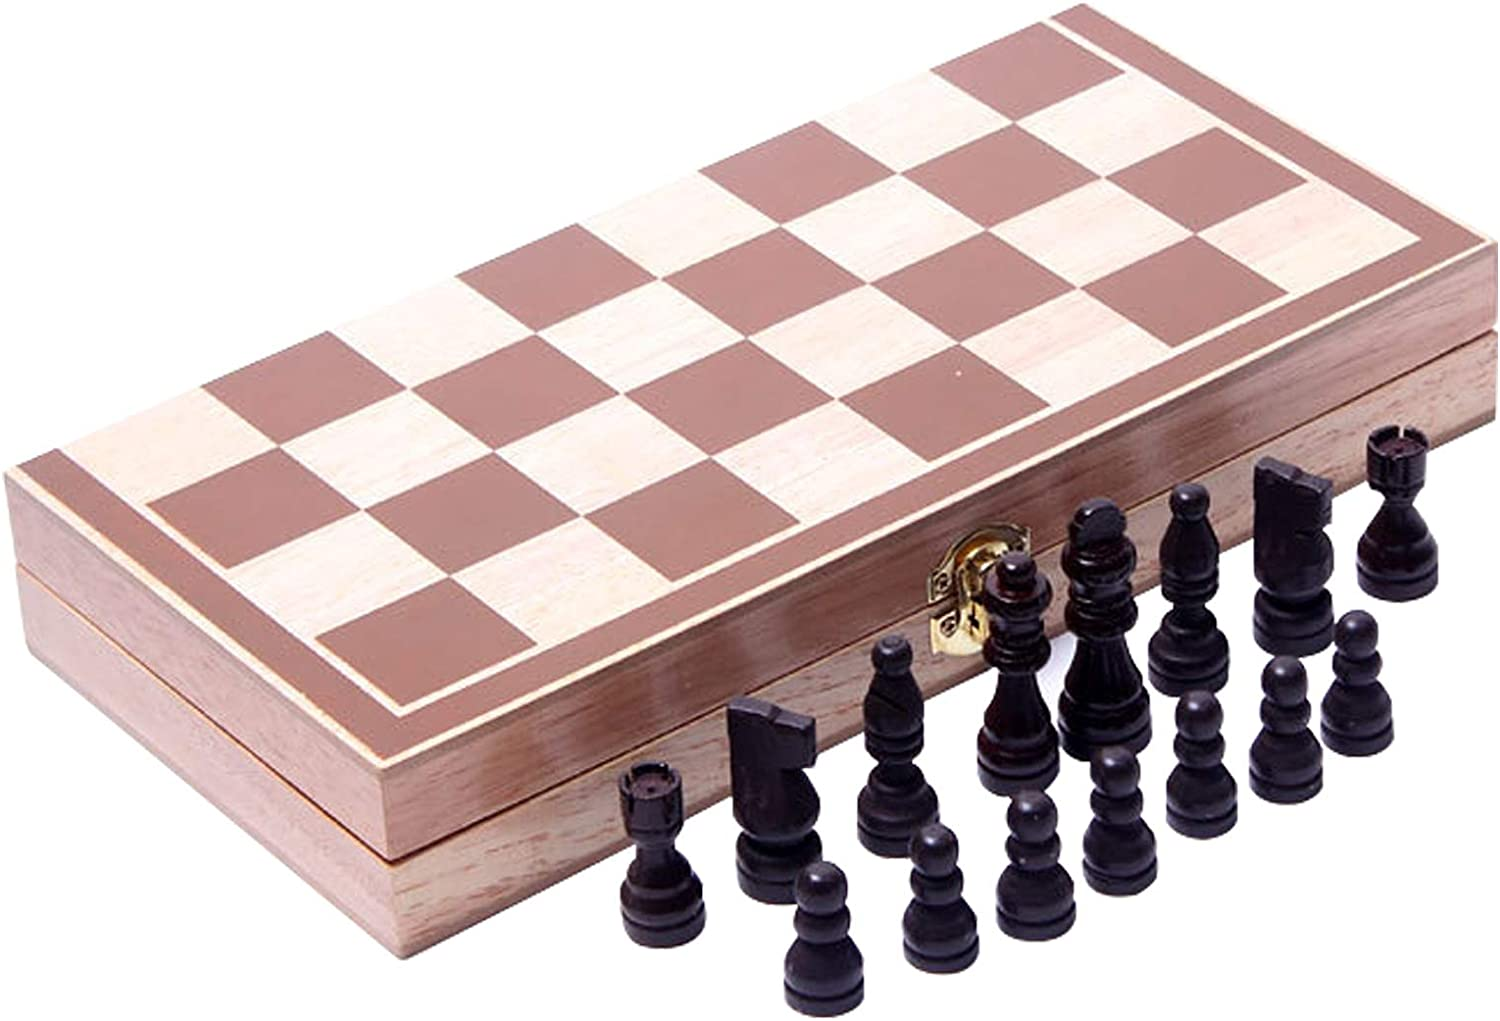 Excellent Chess Set 2 in 1 Magnetic Board New Orleans Mall Base Student Beginner for